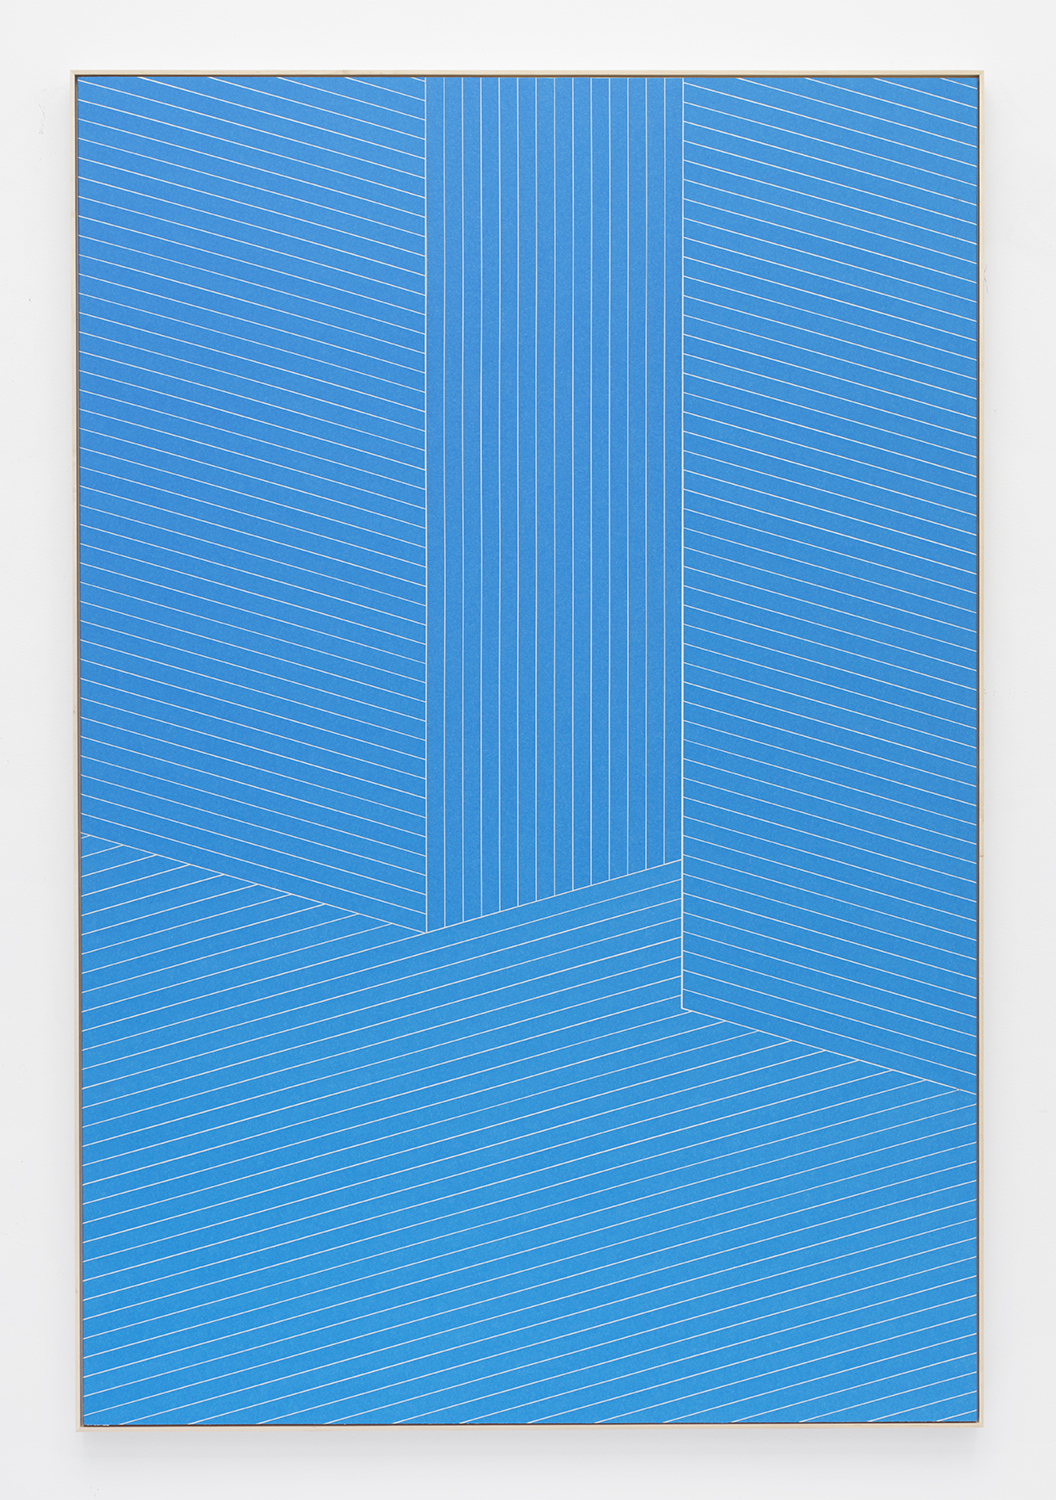 Isaac Brest  Upon Further Examination , 2014 Painter's tape on drywall in artist's frame 72 x 48 inches